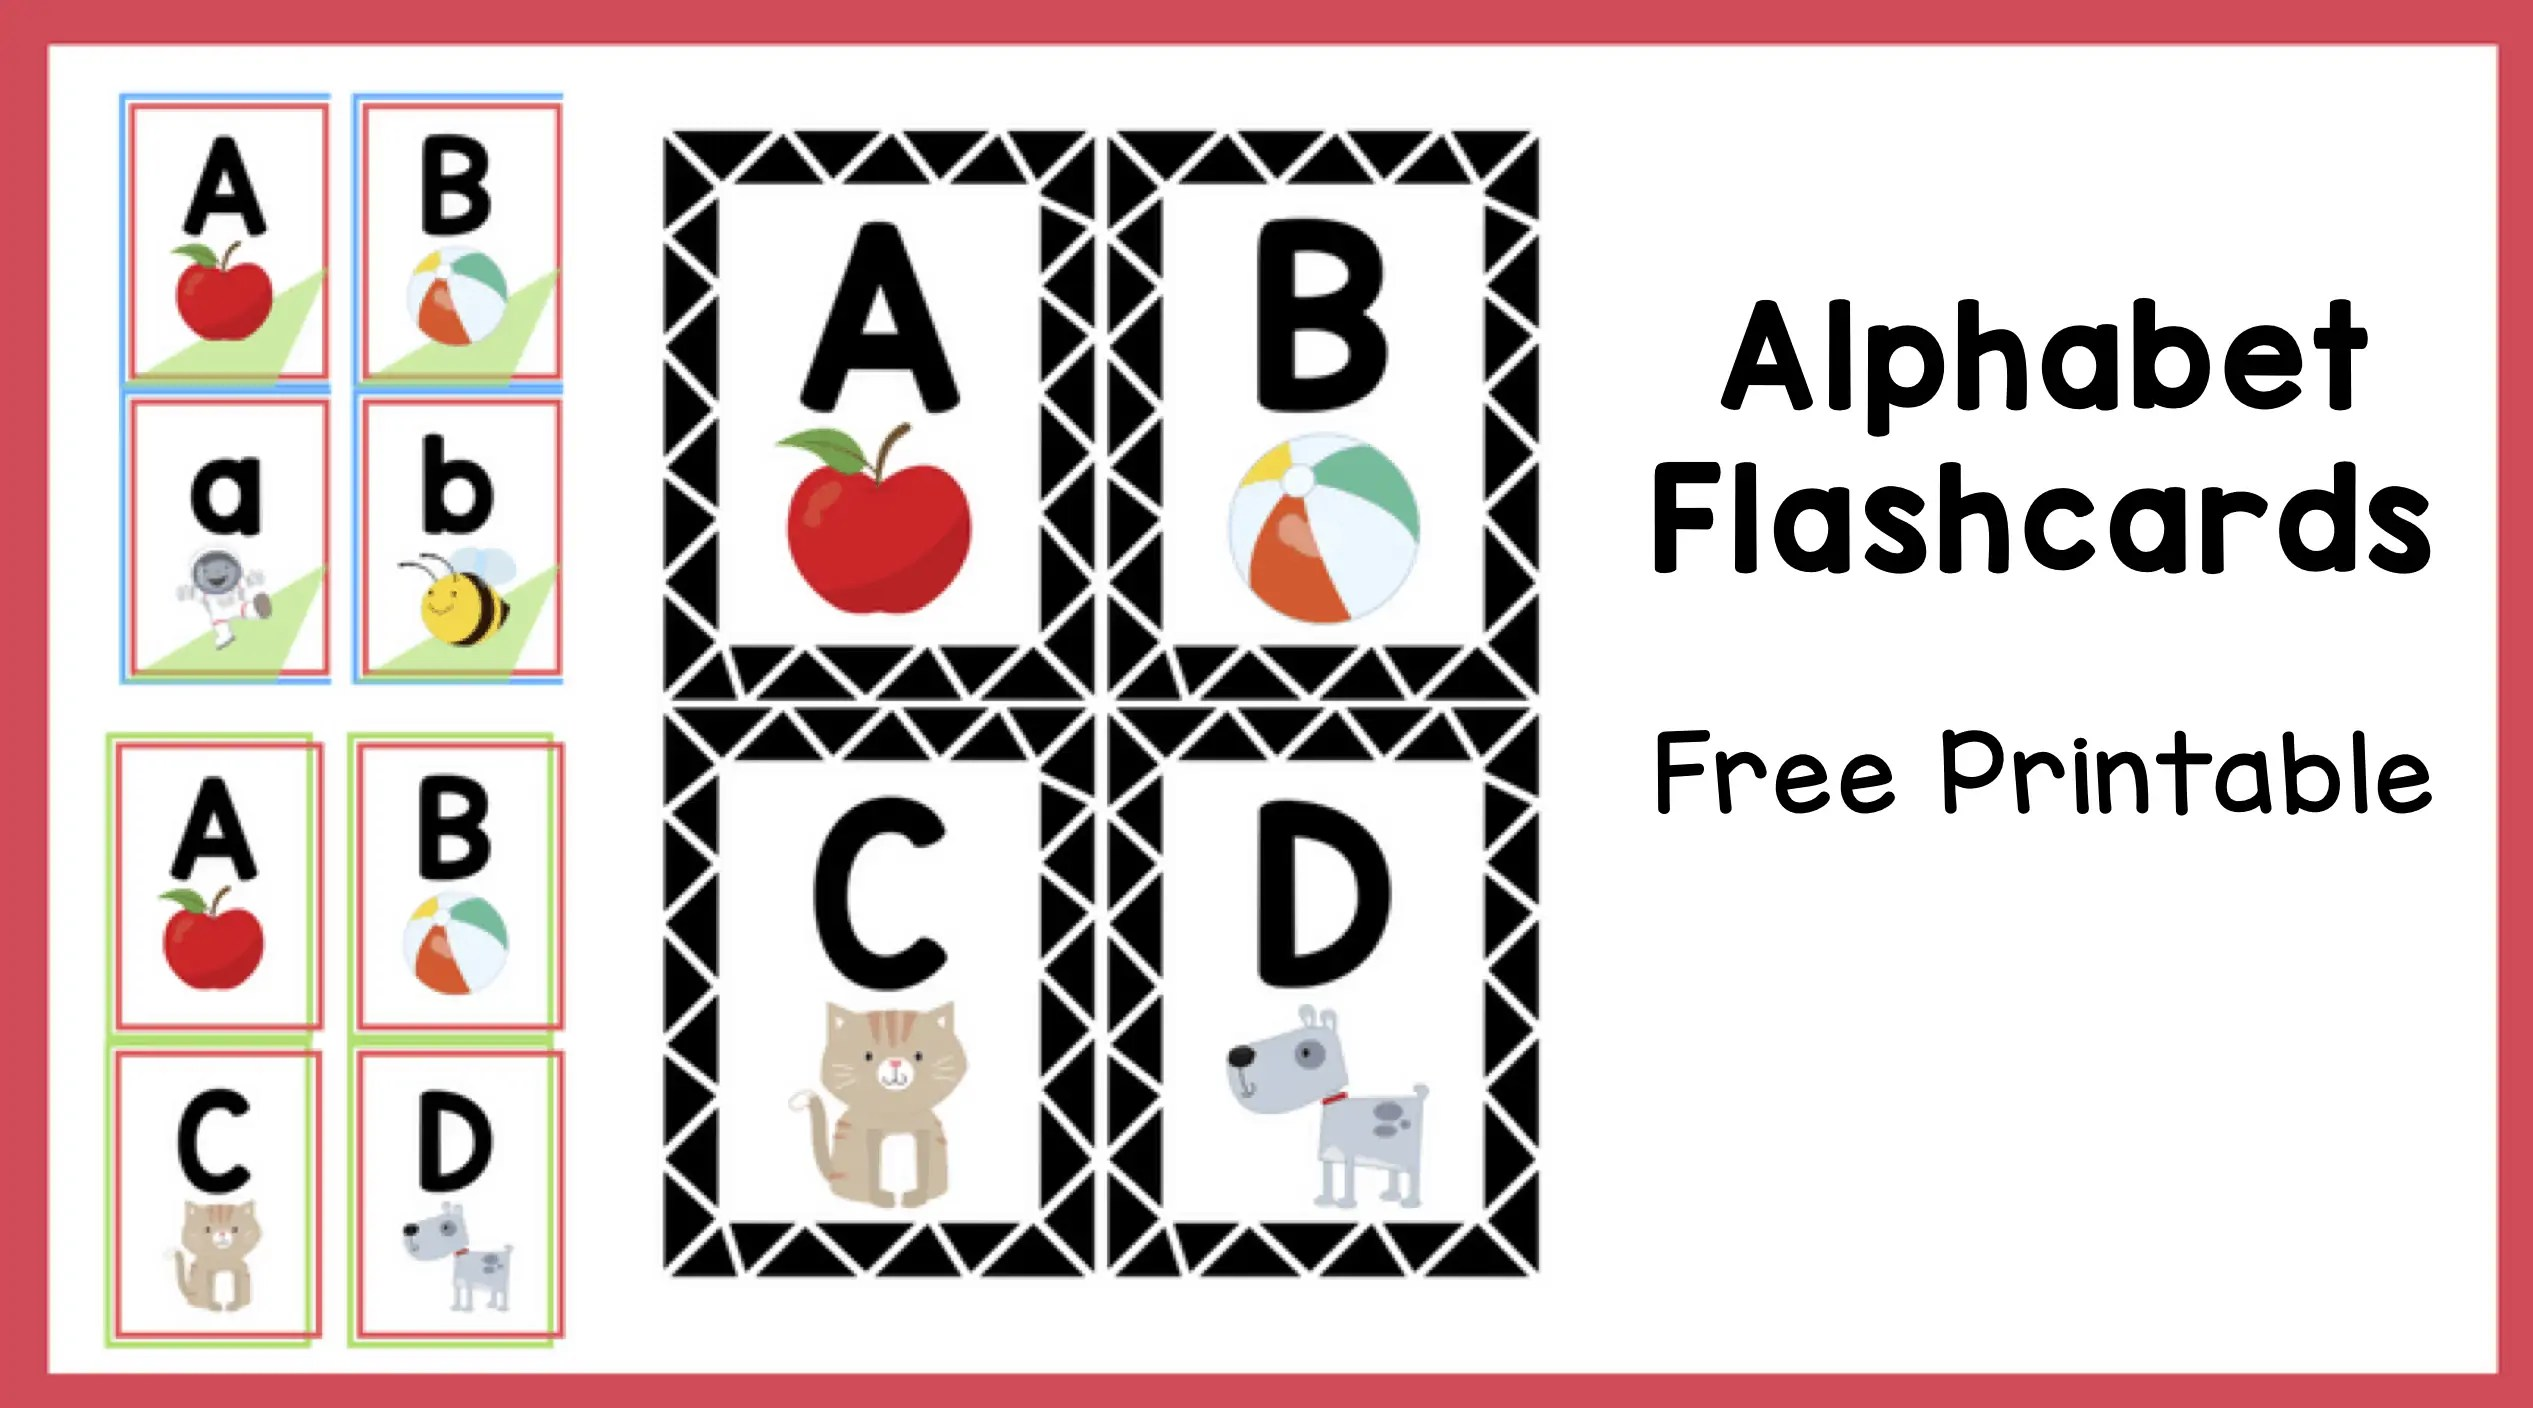 image relating to Printable Toddler Flash Cards called Alphabet Flashcards Cost-free Printable - The Instruction Aunt